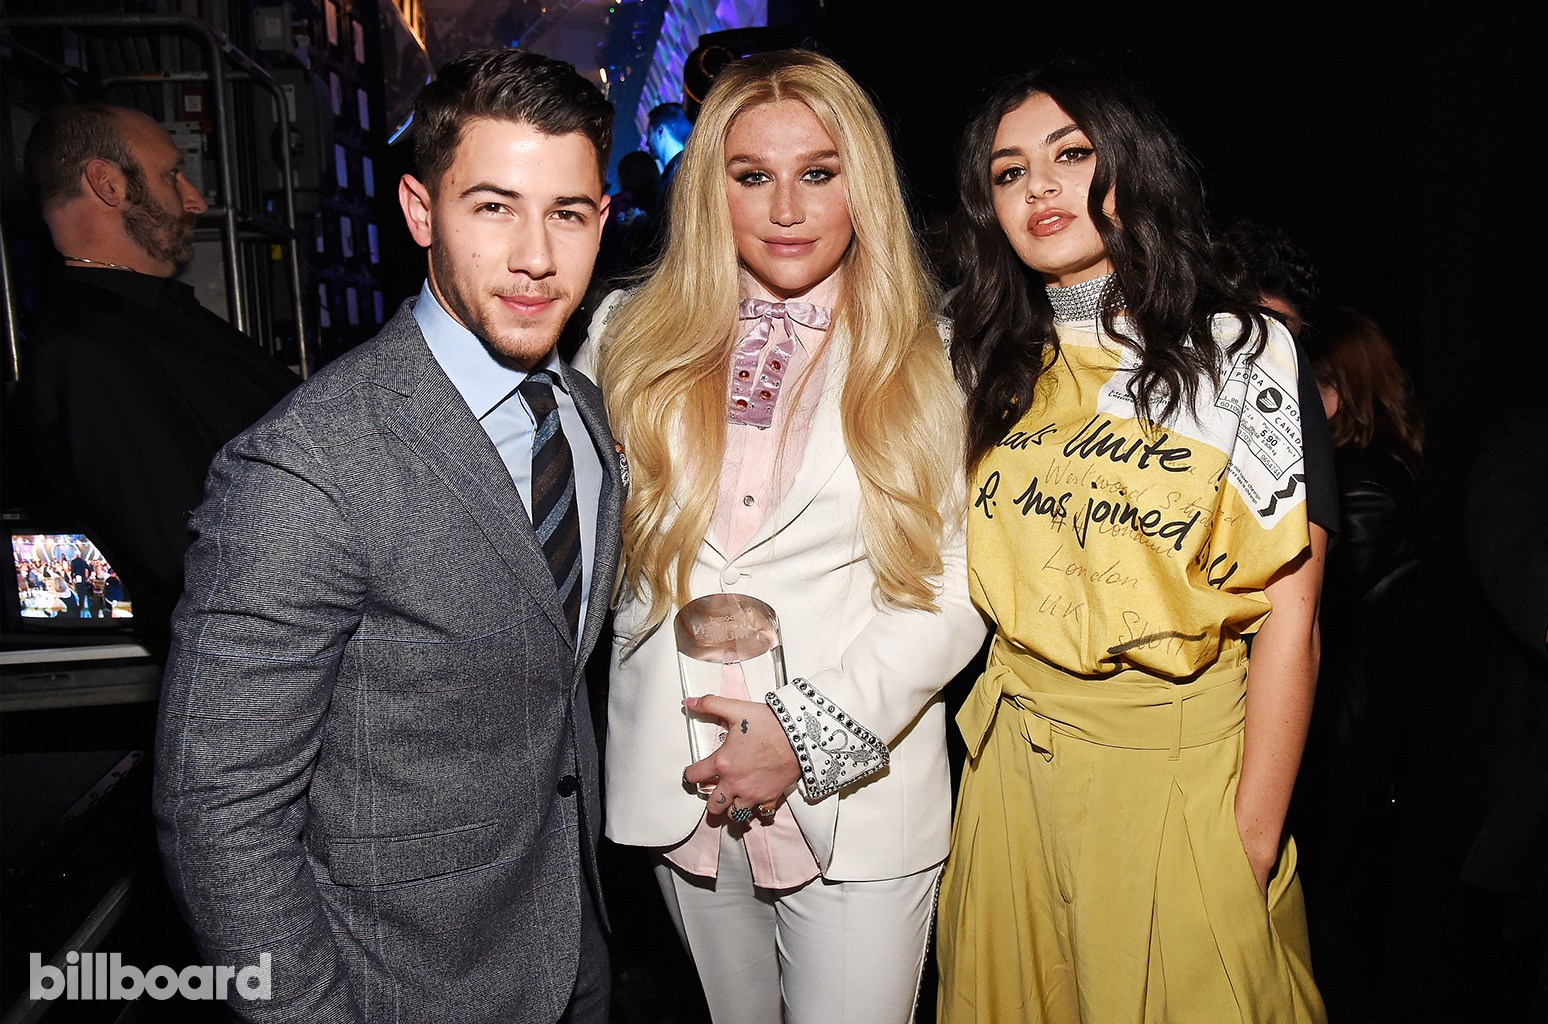 Nick Jonas, Kesha and Charli XCX pose together at the Billboard Women in Music 2016 event on Dec. 9, 2016 in New York City.